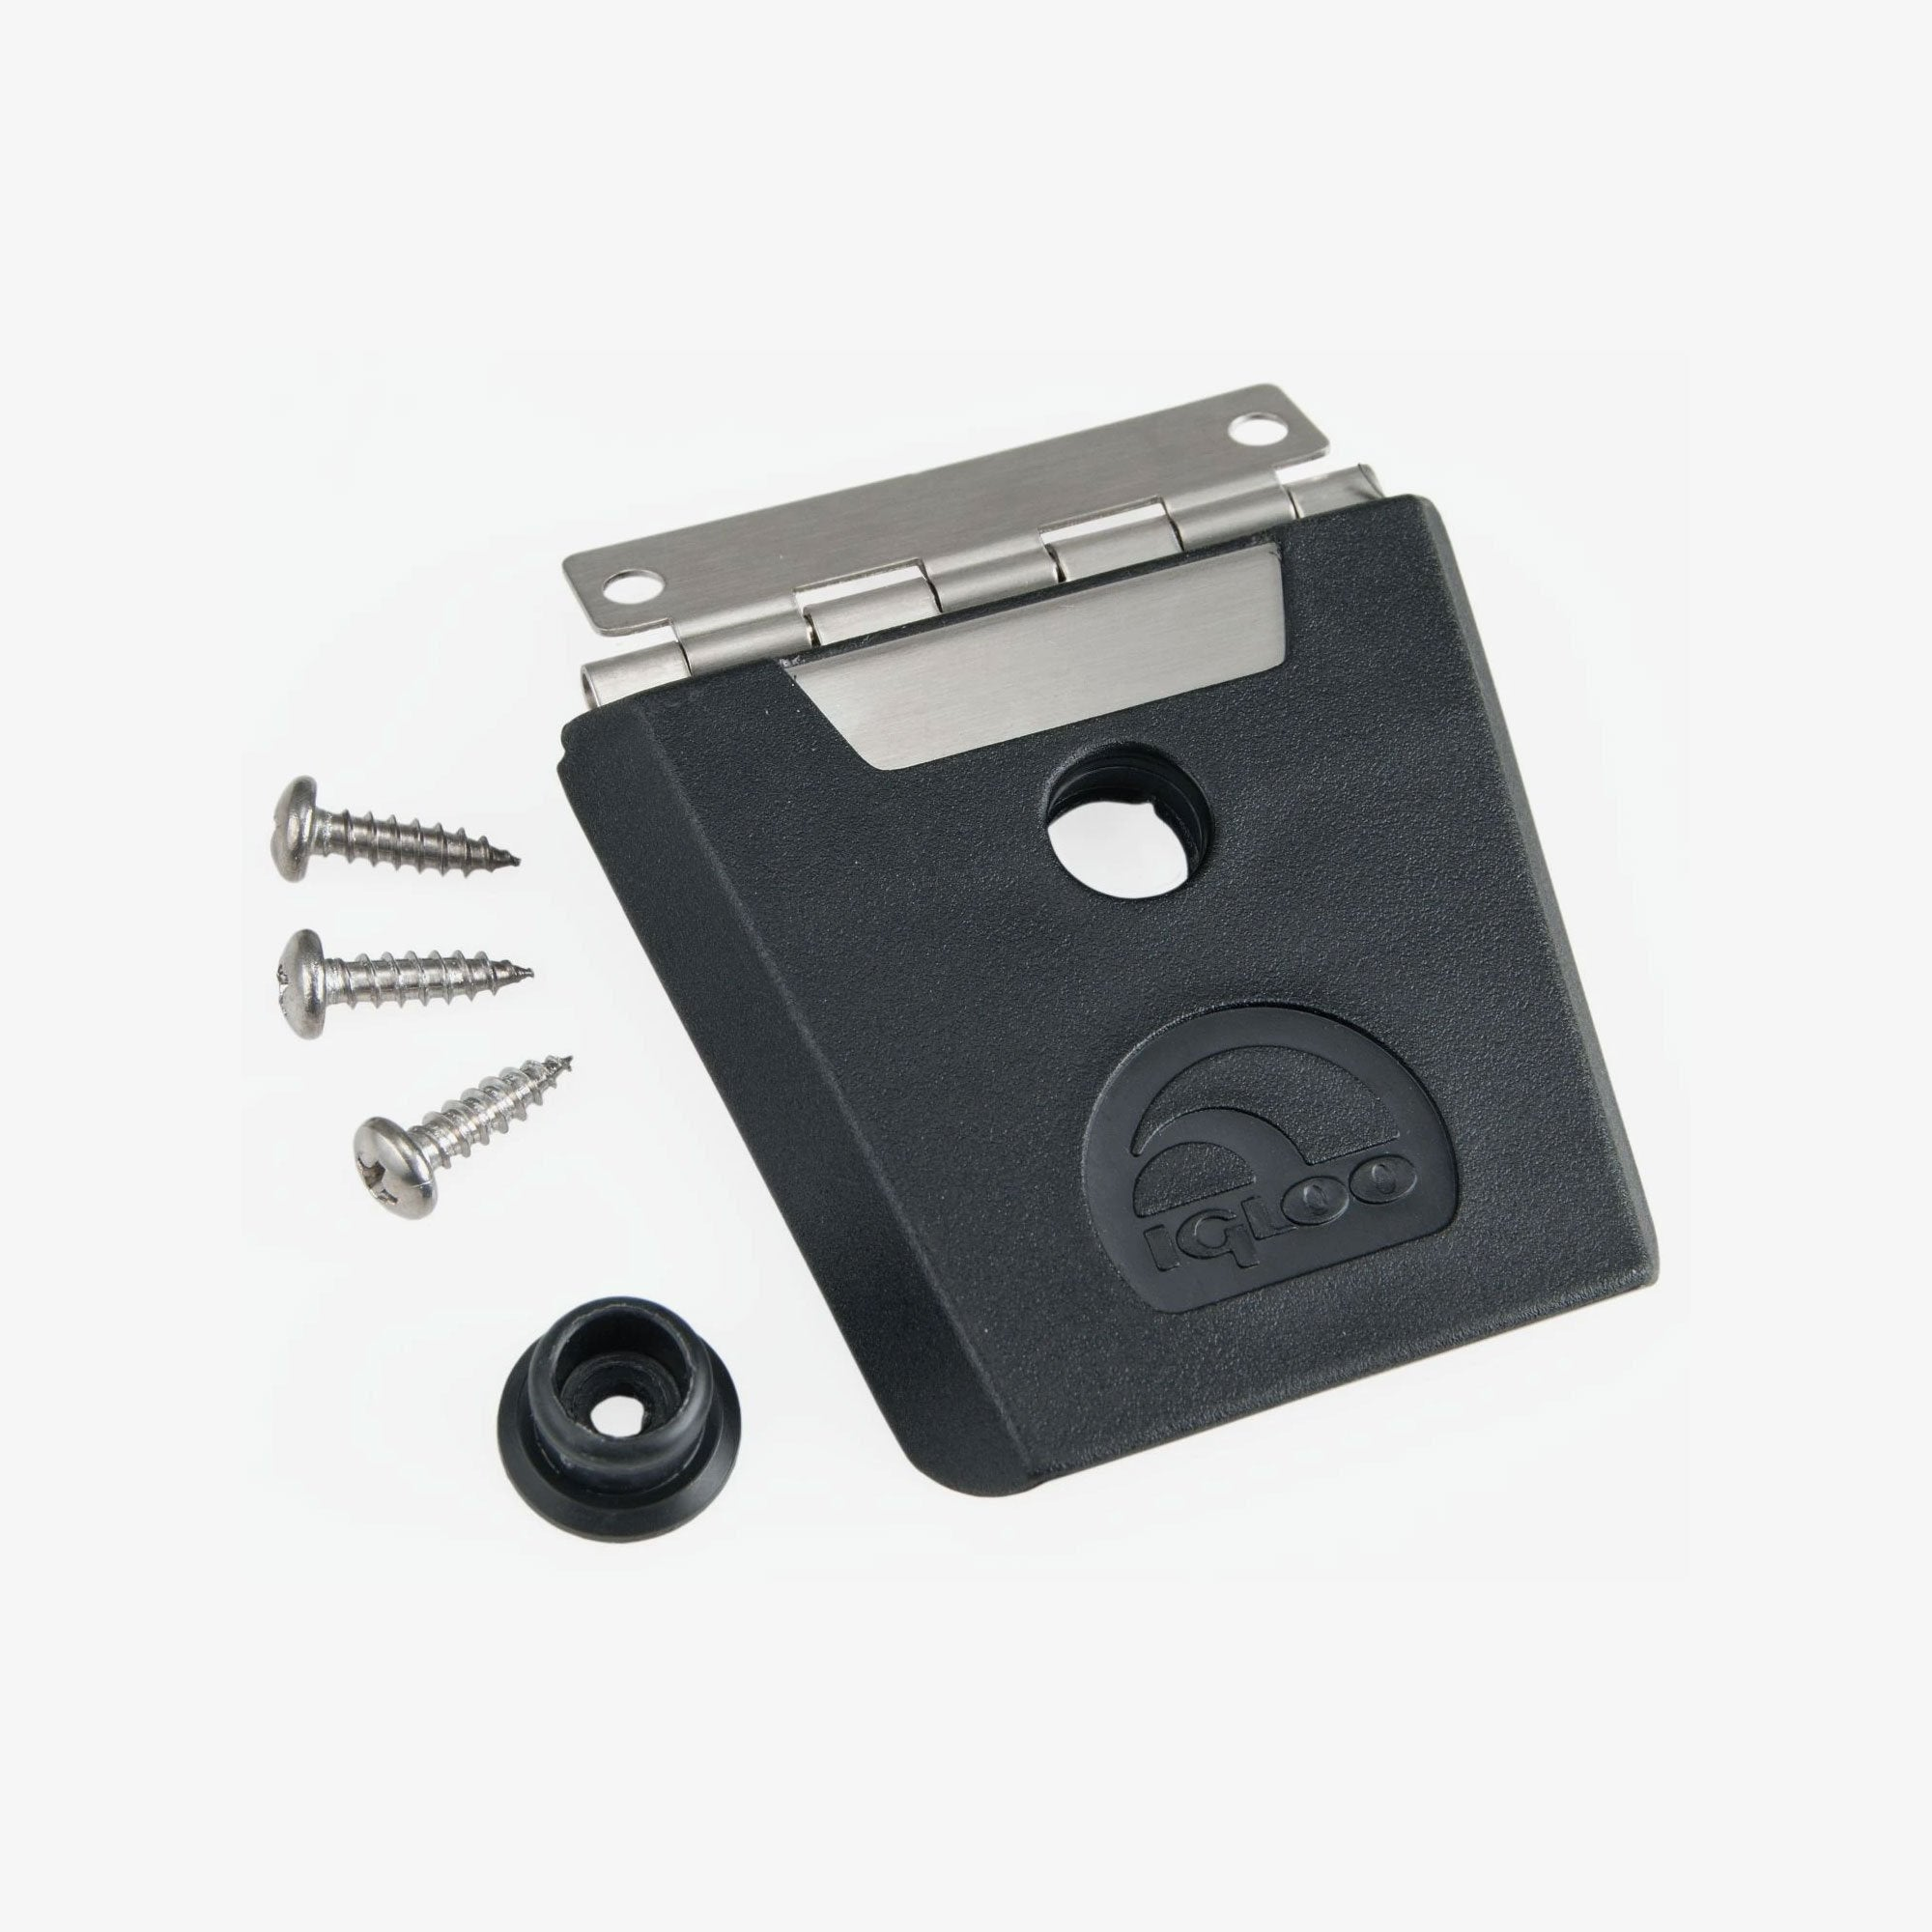 Large View | Hybrid Stainless Steel and Plastic Universal Latch and Button in Black, Stainless Steel at Igloo Accessories